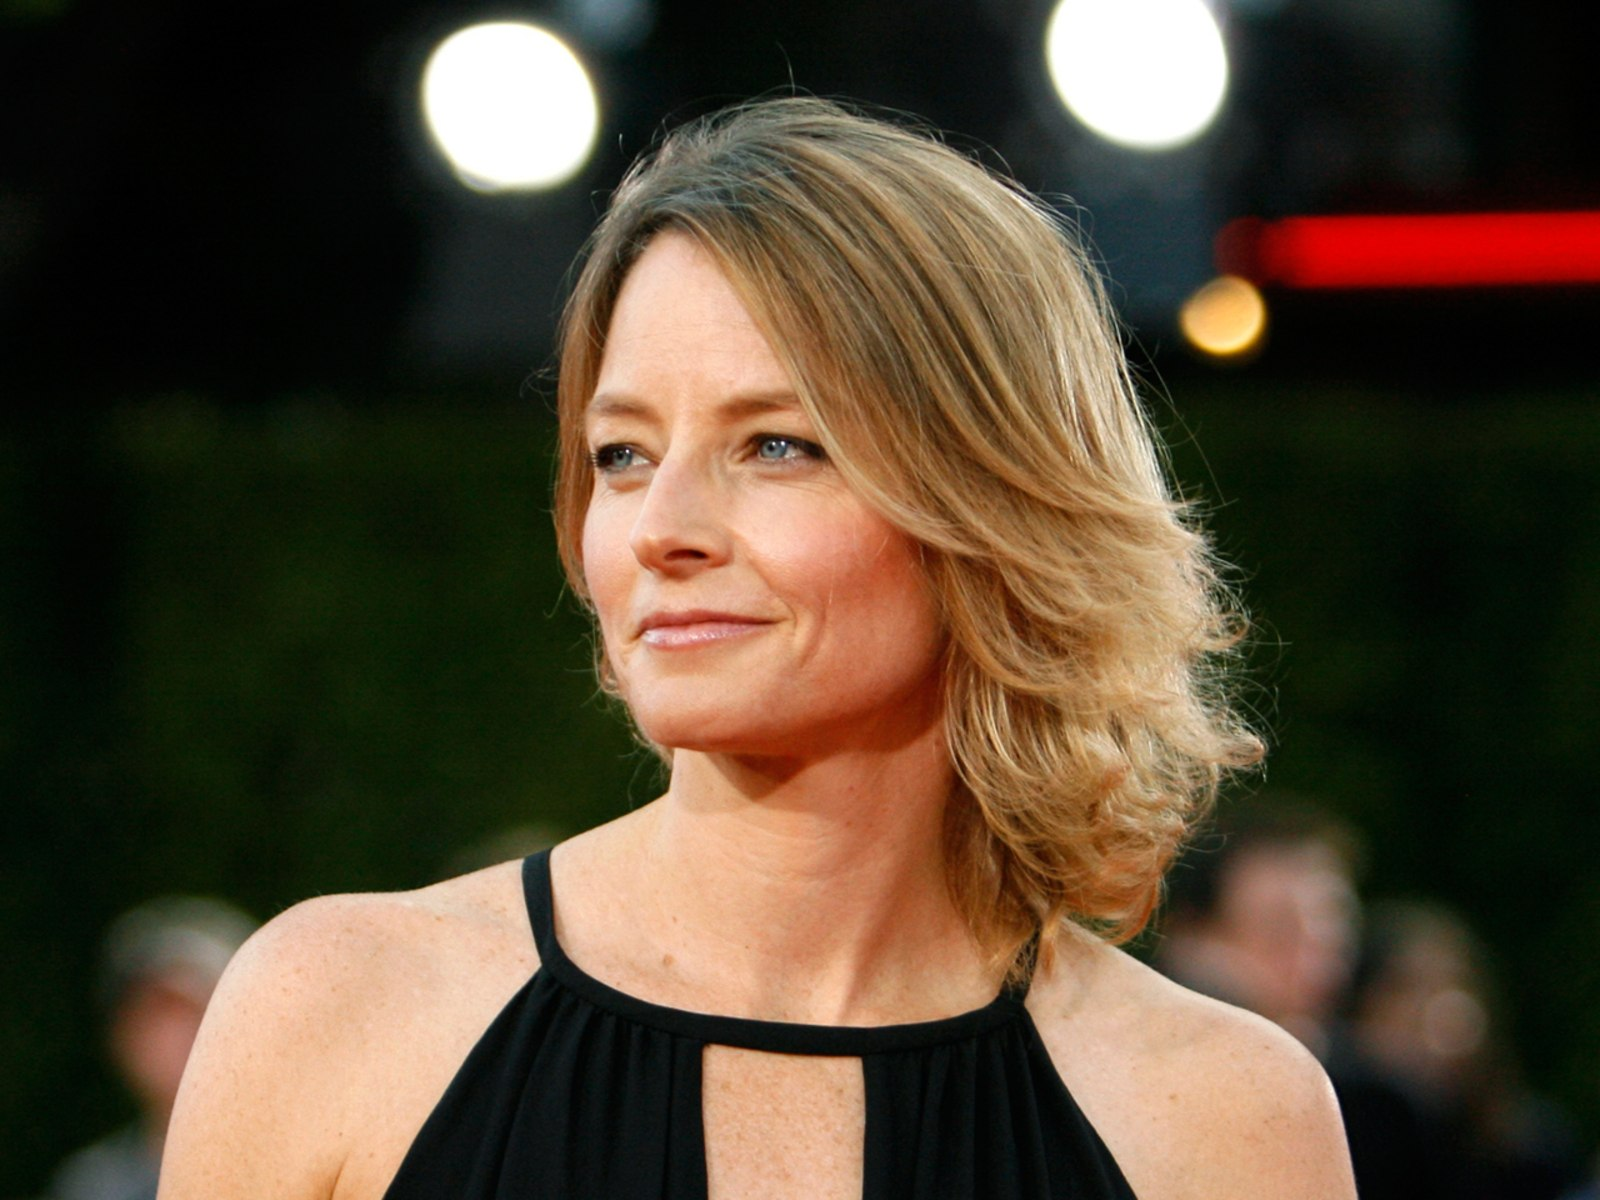 """Image: Actress Jodie Foster poses during premiere of """"Tropic Thunder"""" in Westwood"""